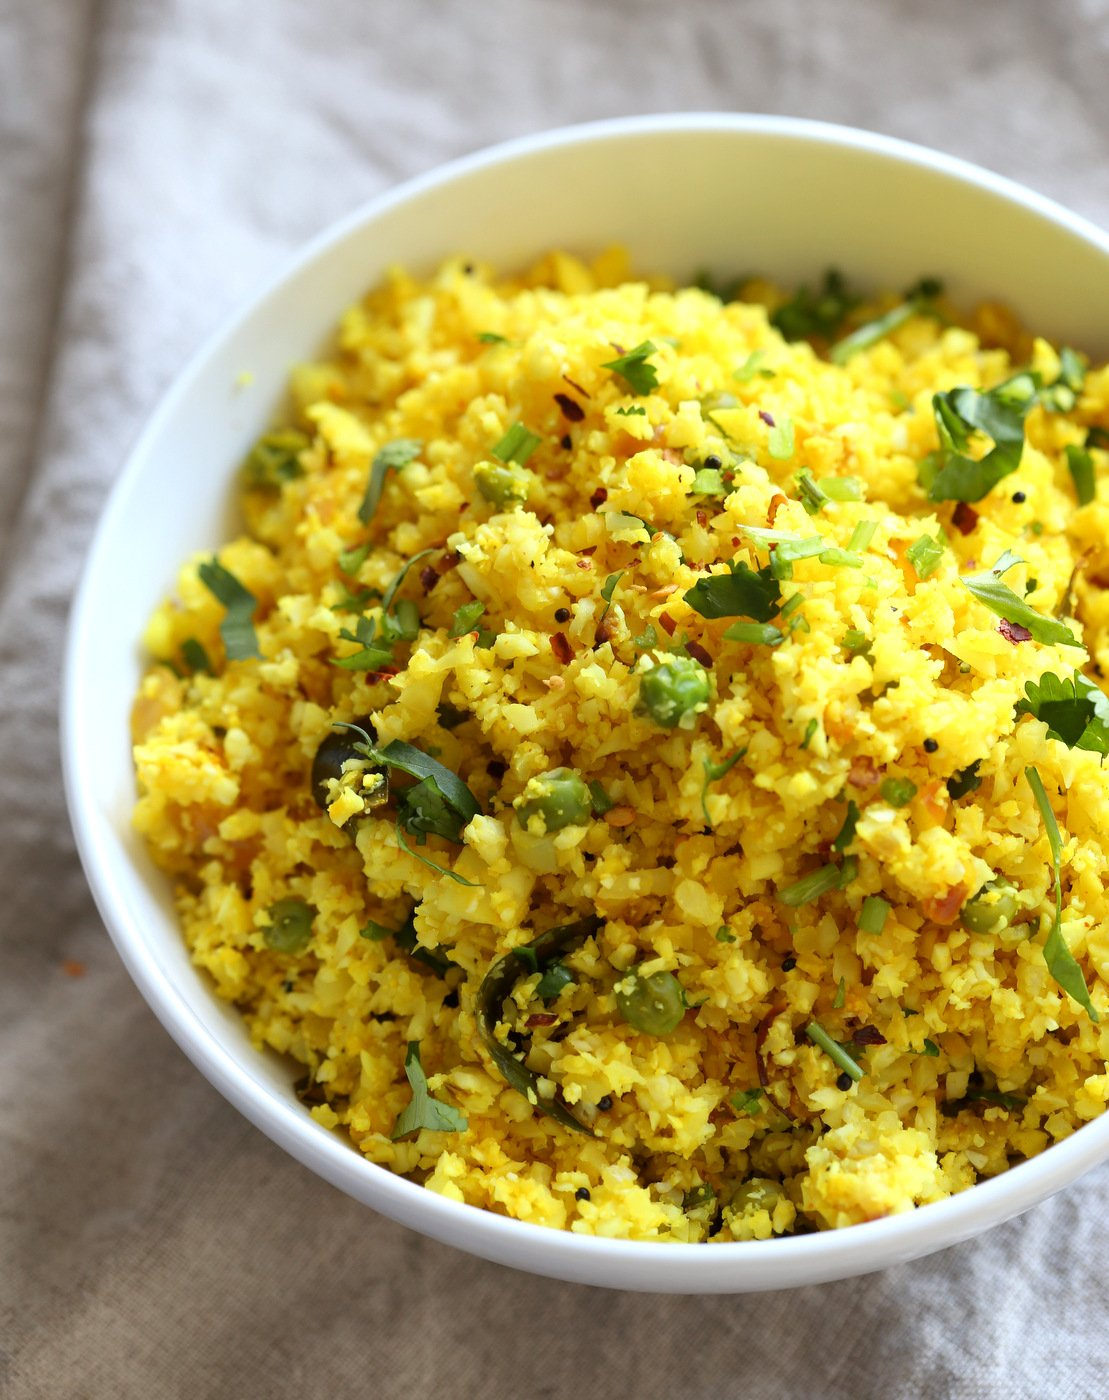 Lemony Turmeric Cauliflower Rice. Easy Side with any meal. 1 Pot Lemon Cauliflower Rice with mustard seeds and garlic. #Vegan #Glutenfree #Grainfree #Nutfree #Recipe #Turmeric #cauliflowerrice #veganrucha